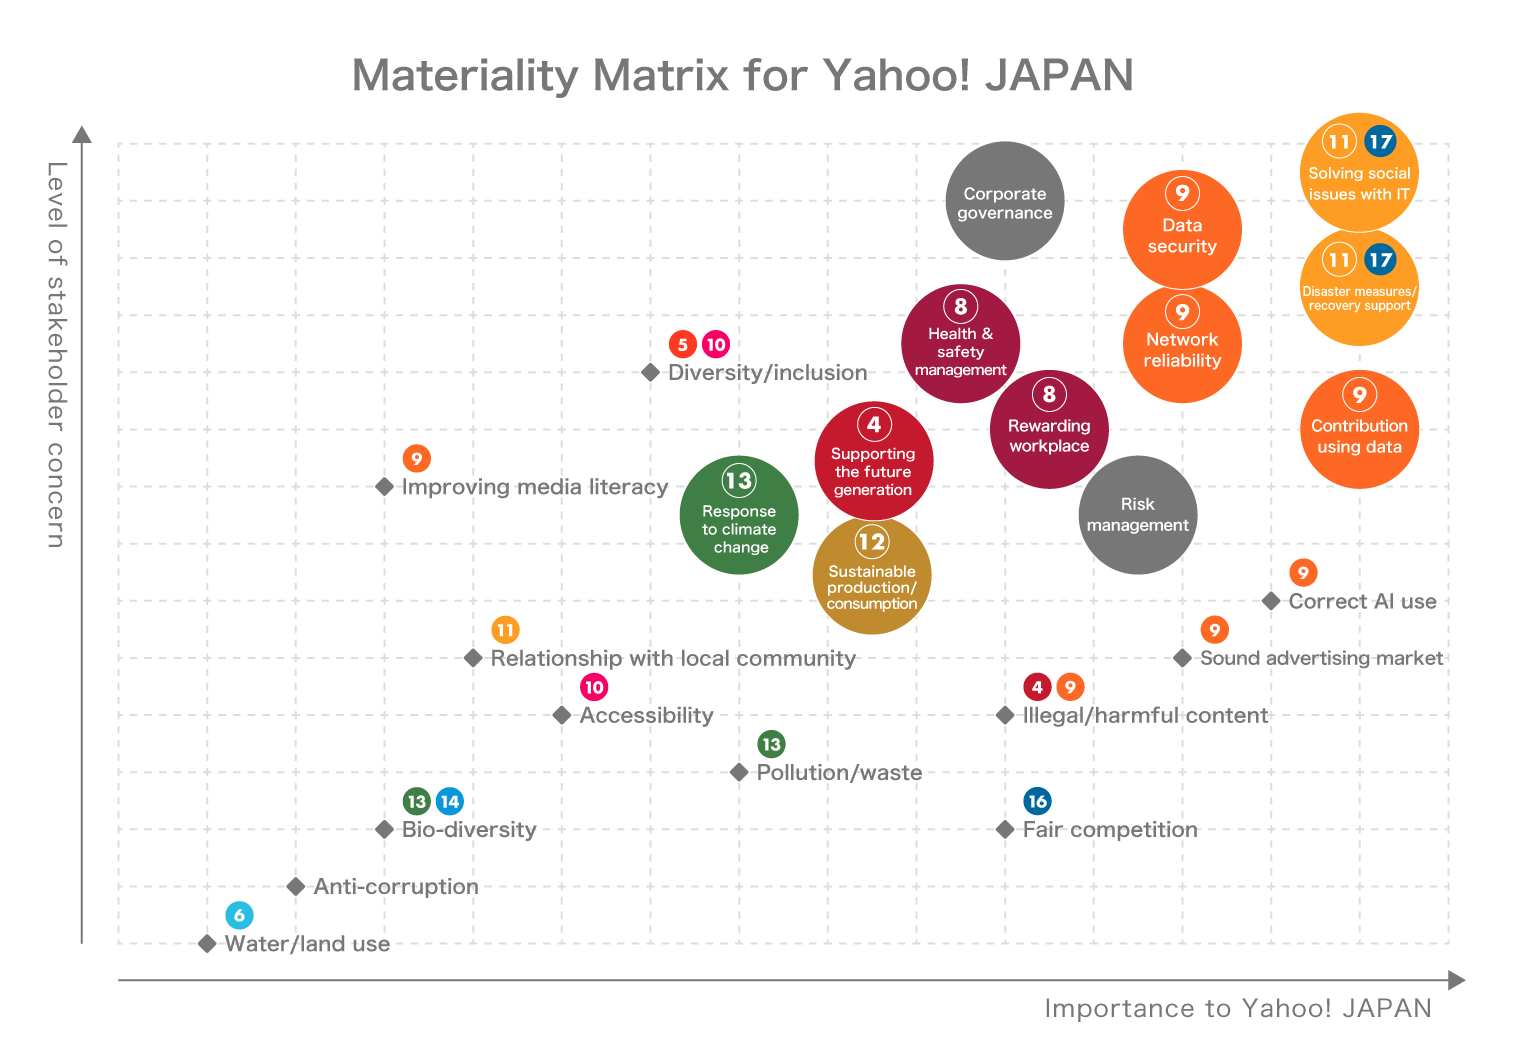 Materiality Matrix for Yahoo! JAPAN